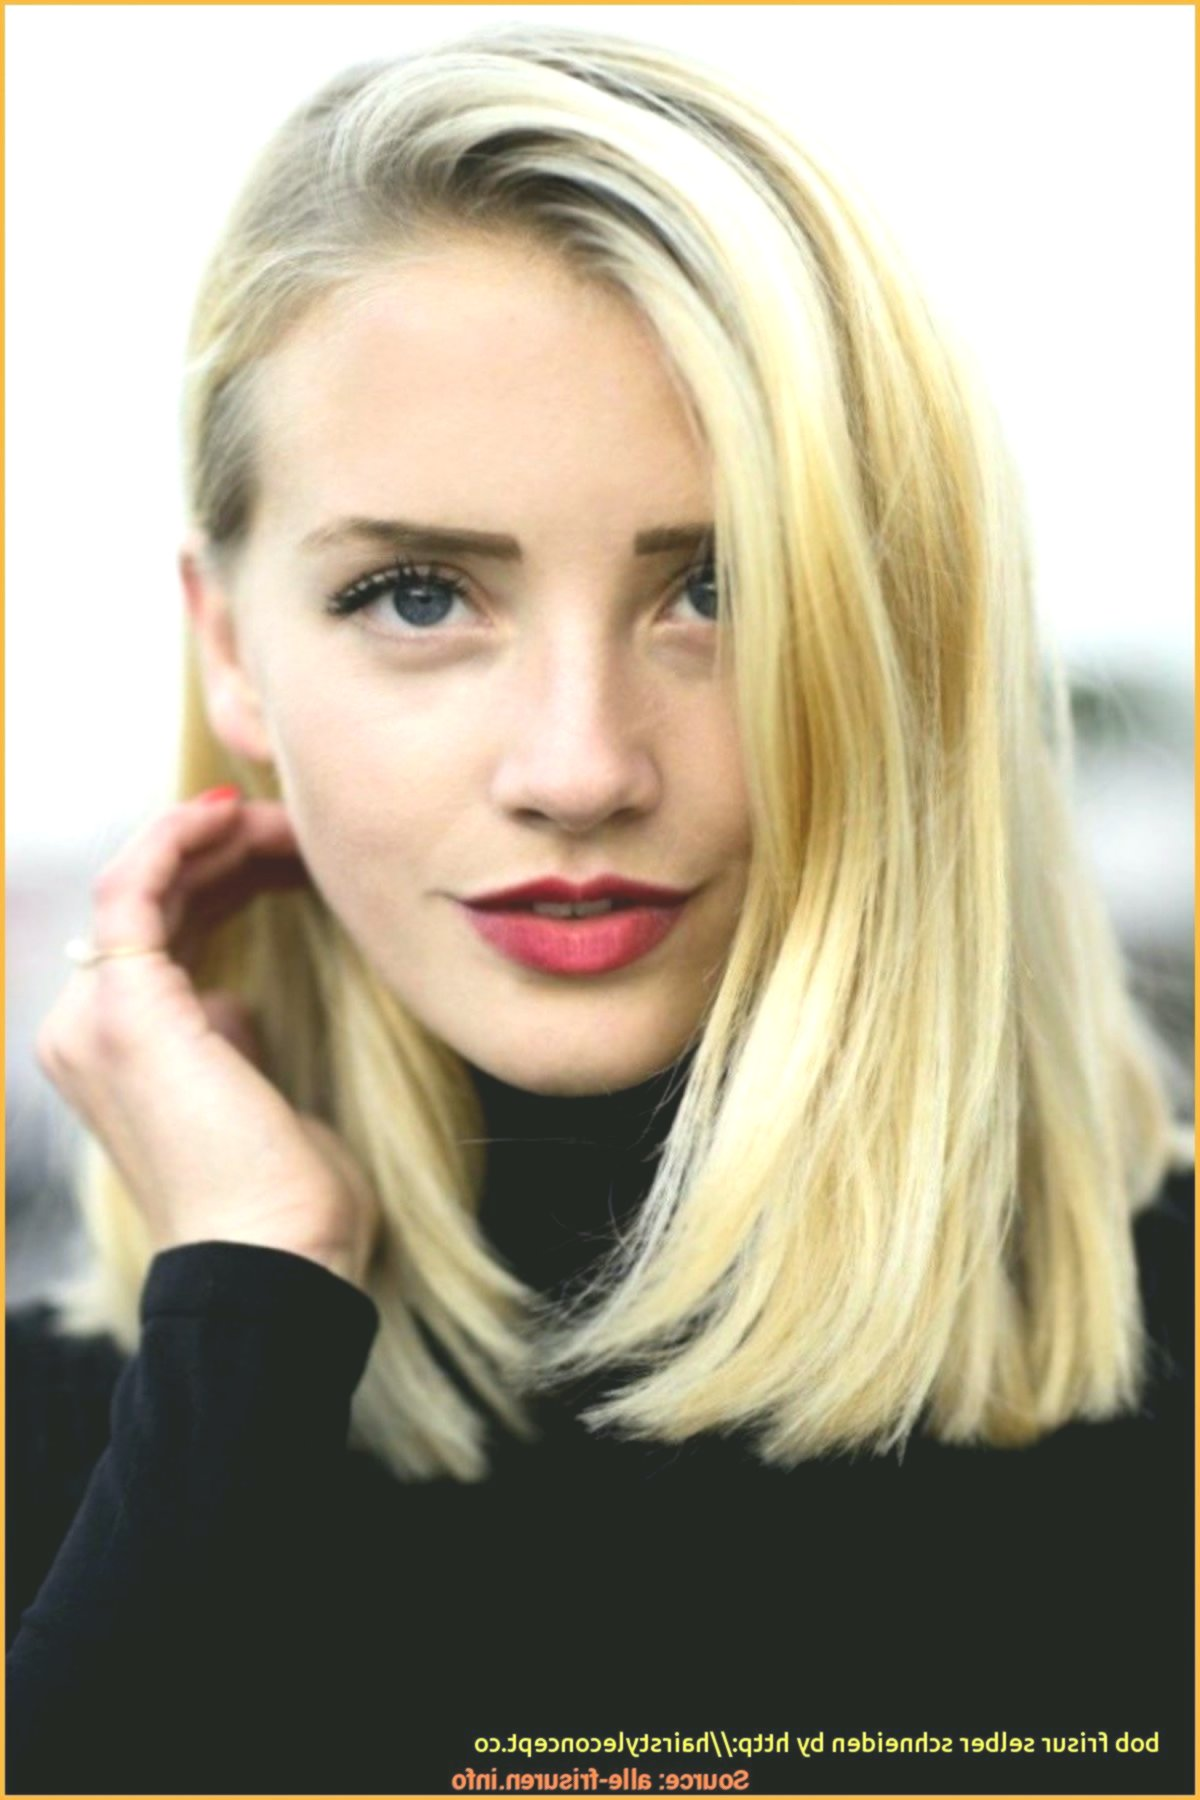 elegant hair self cutting bob concept modern hair self cutting bob photo